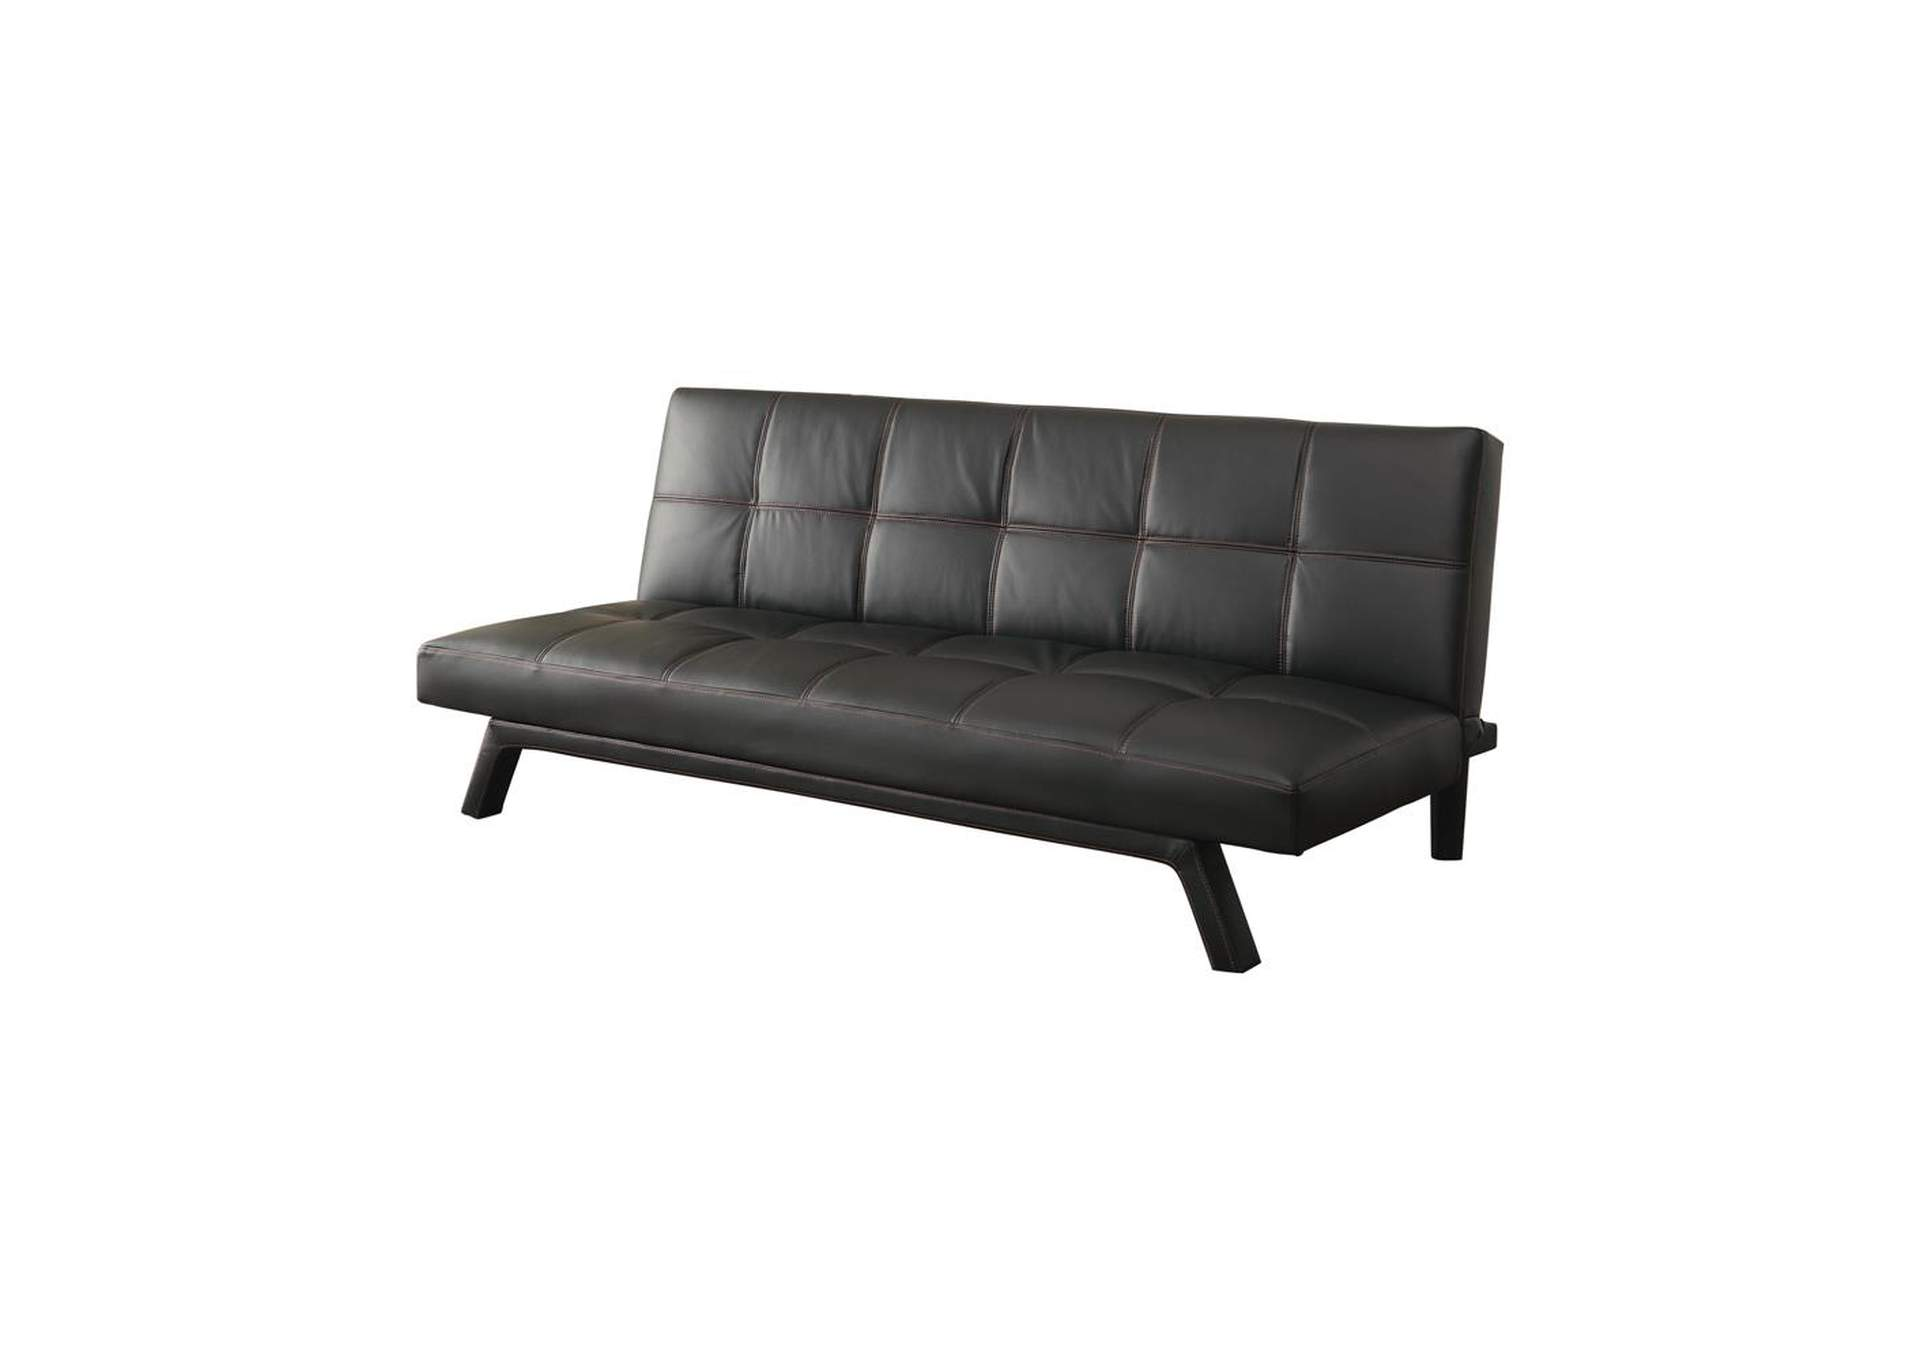 Black Contemporary Black Sofa Bed,Coaster Furniture